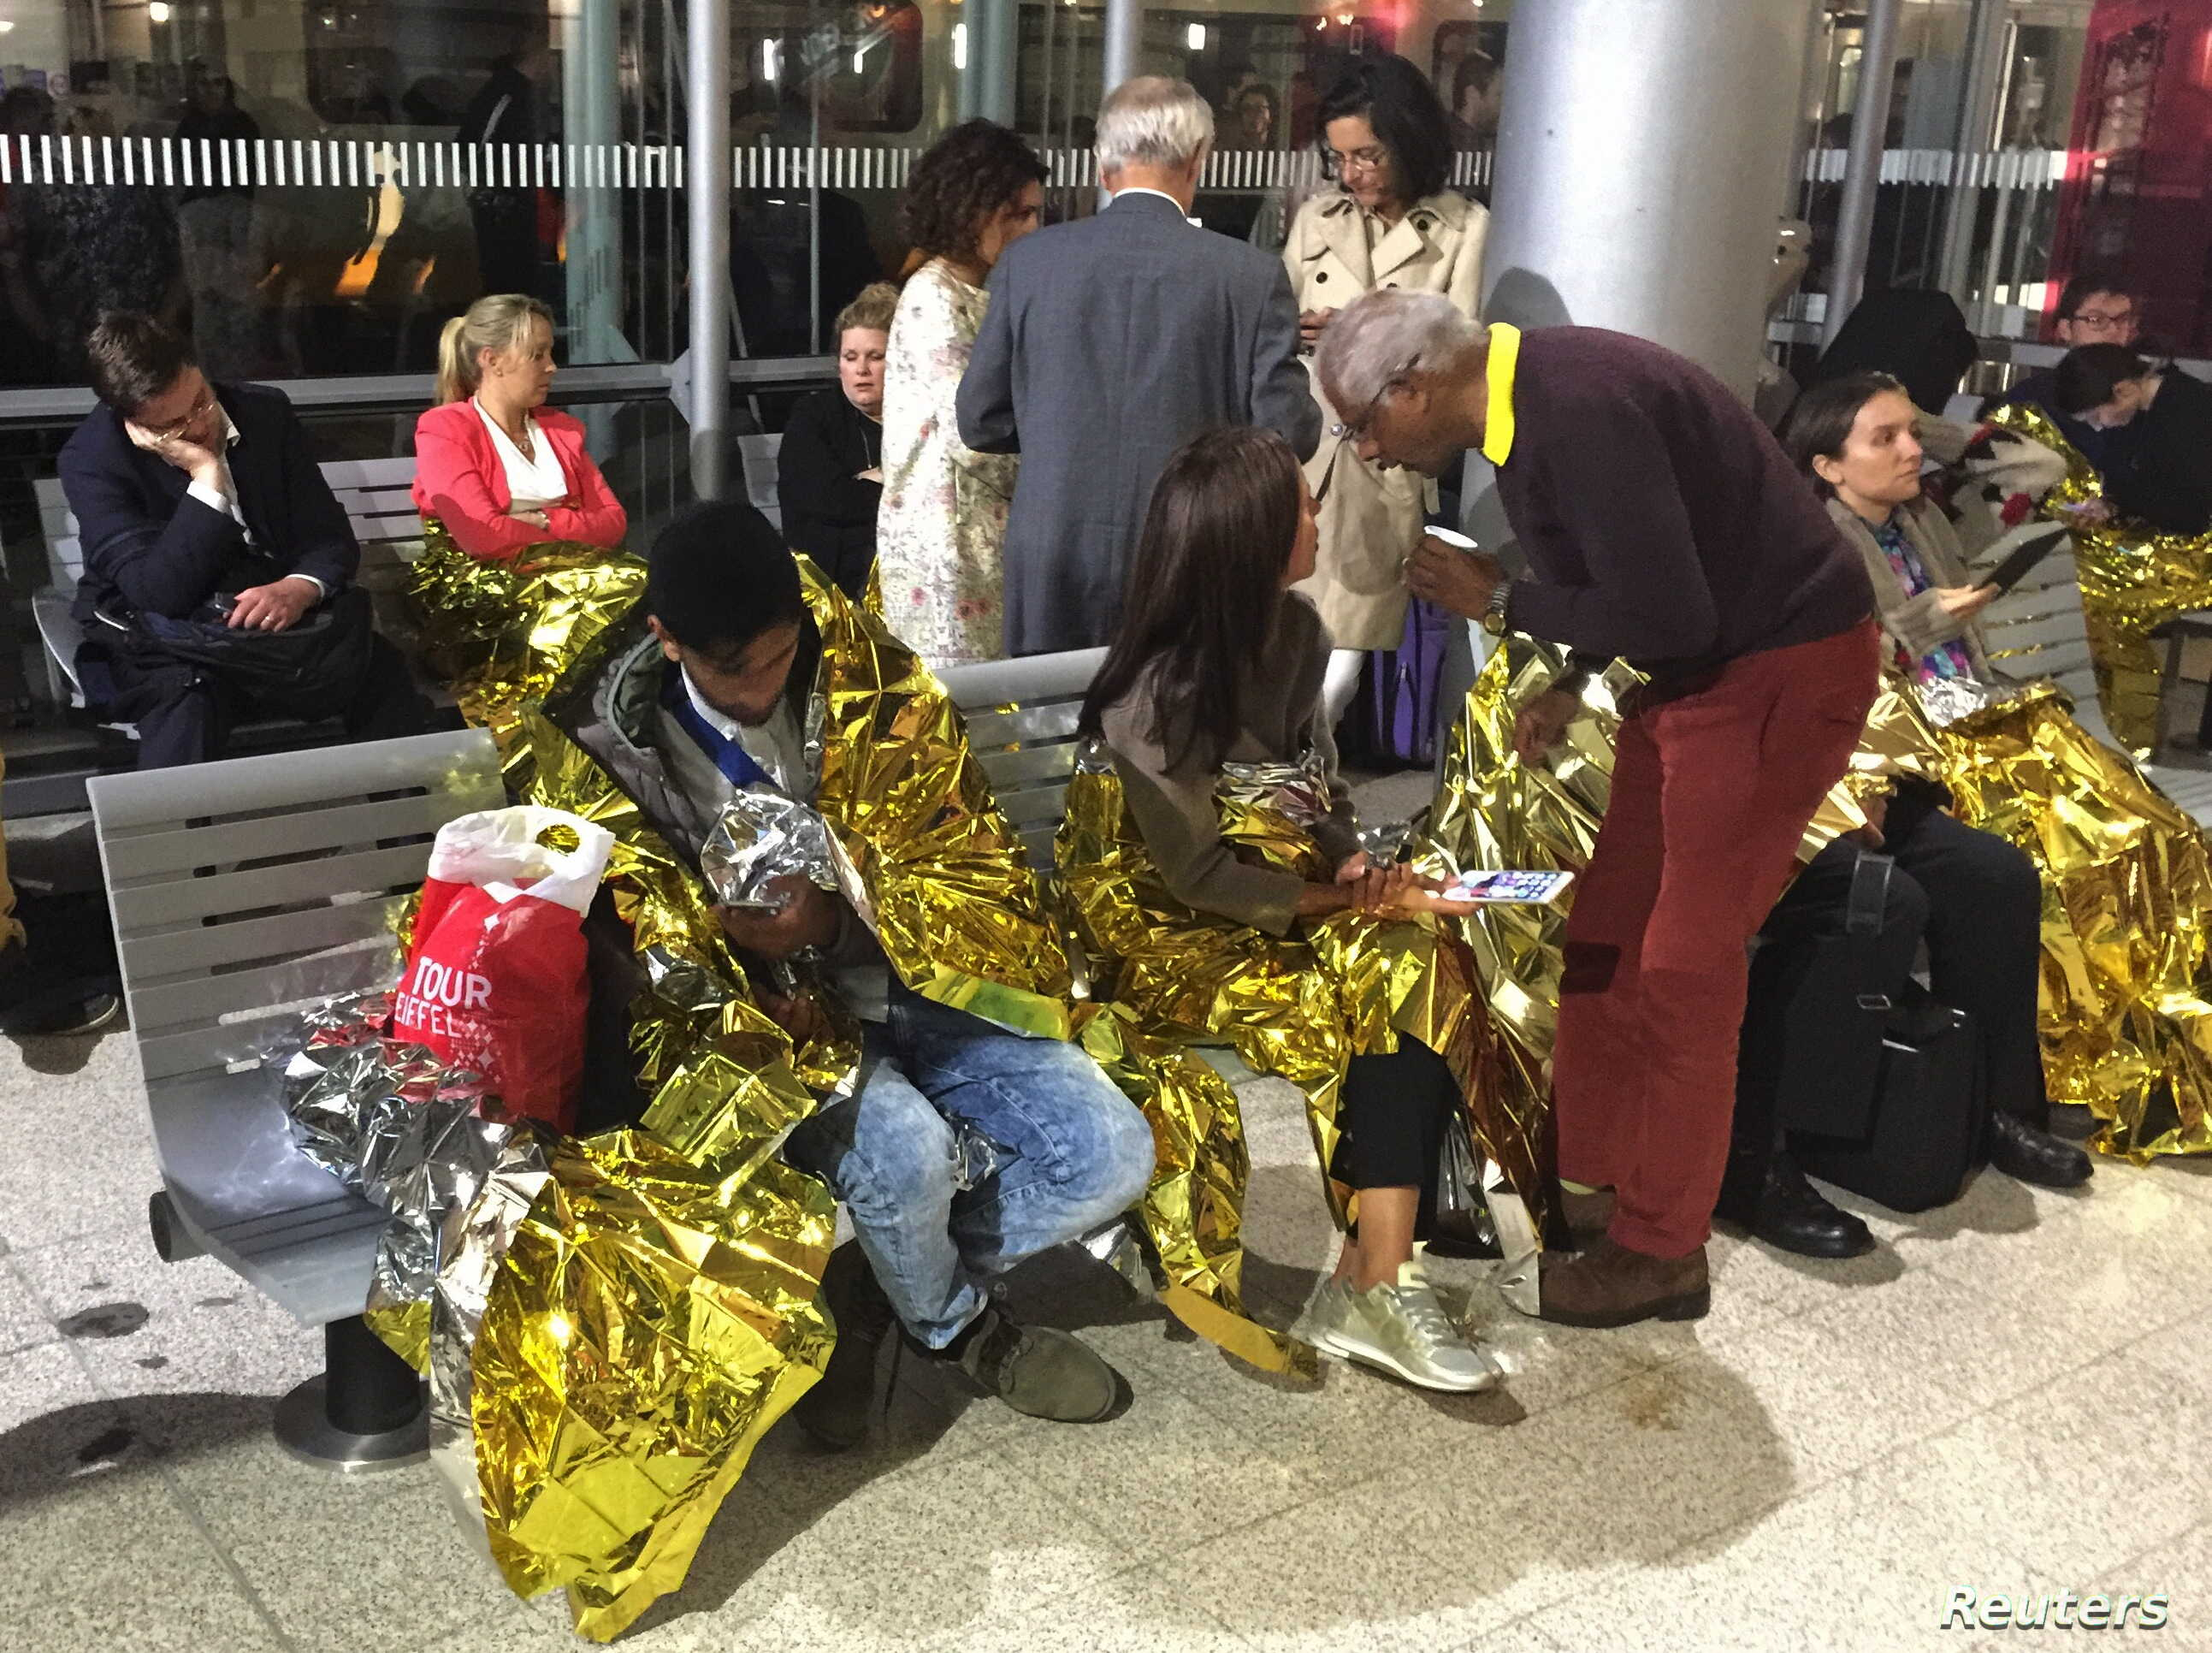 Passengers wrapped in thermal foil blankets given out by emergency services after their Eurostar train was stranded at Calais Station, after intruders were seen near the Eurotunnel, in Calais, France Sept. 2, 2015.